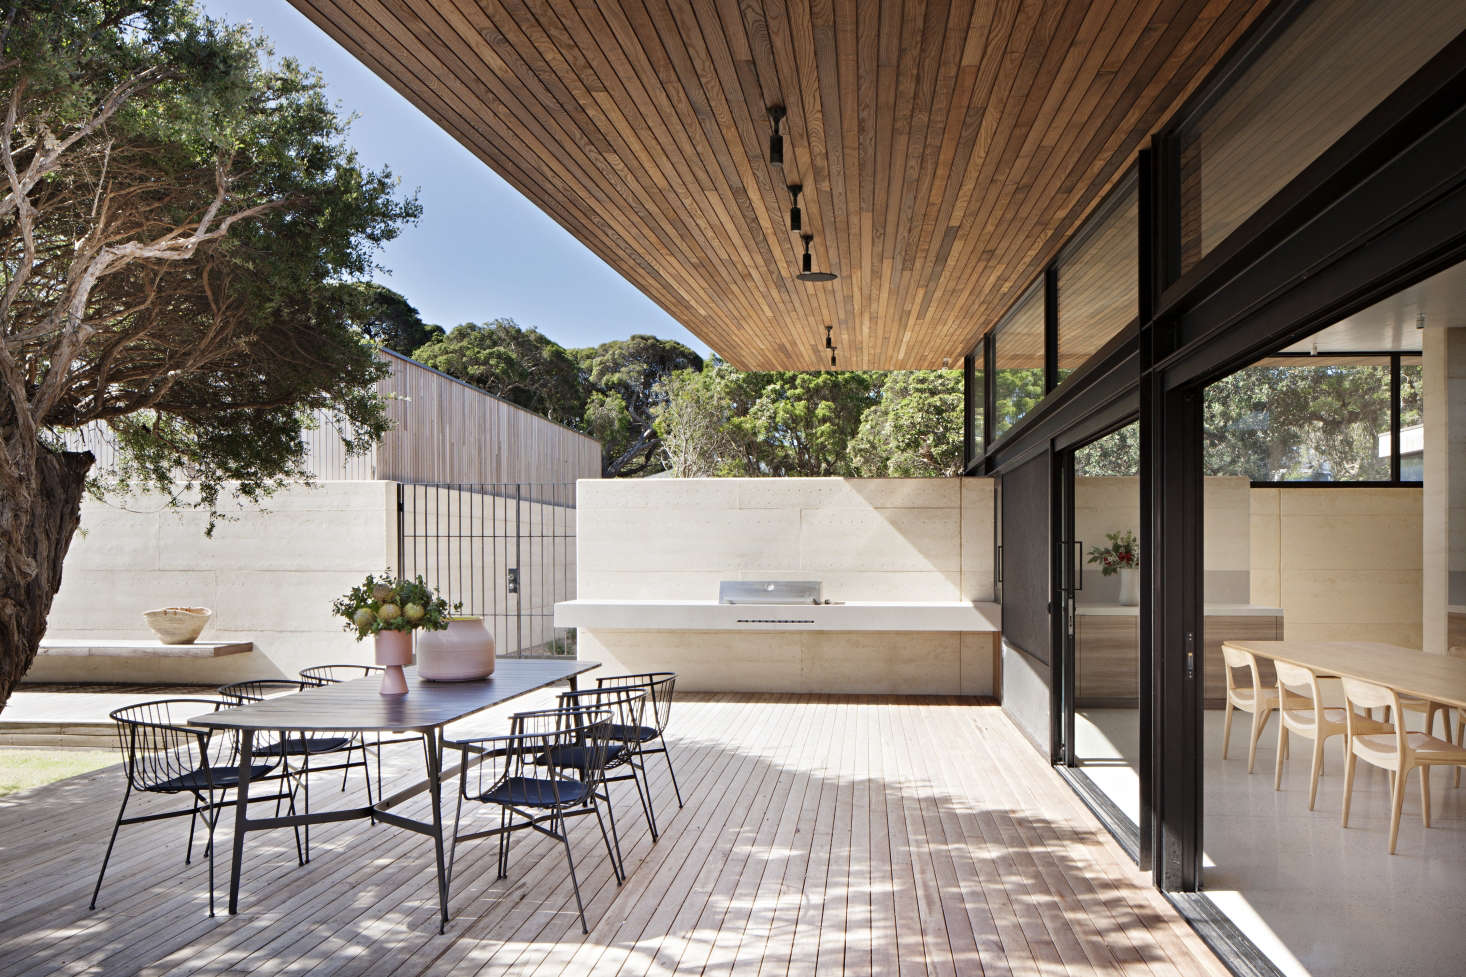 The dining terrace is paneled above and below in spotted gum, an Australian hardwood.